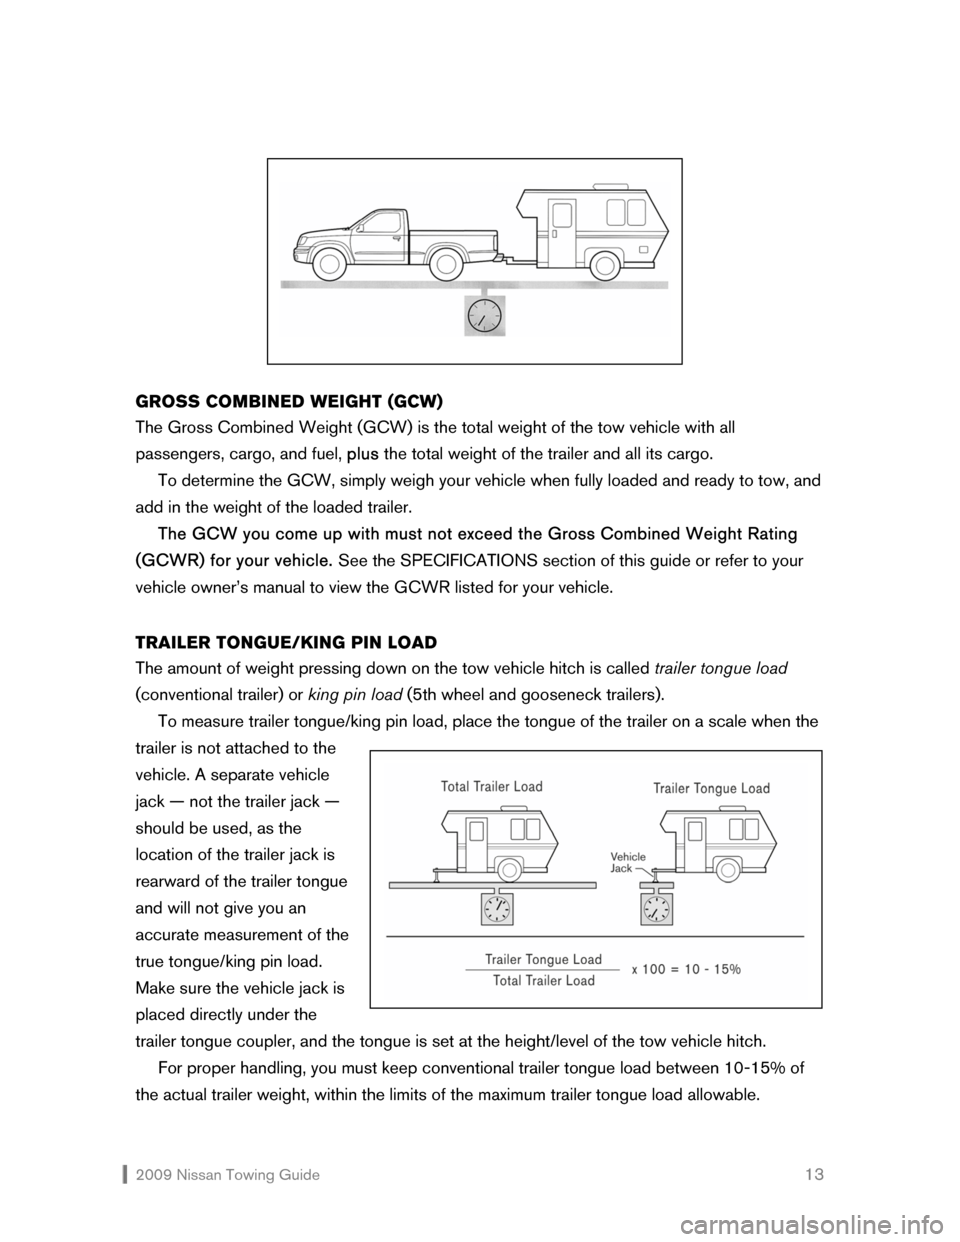 NISSAN VERSA HATCHBACK 2009 1.G Towing Guide, Page 14